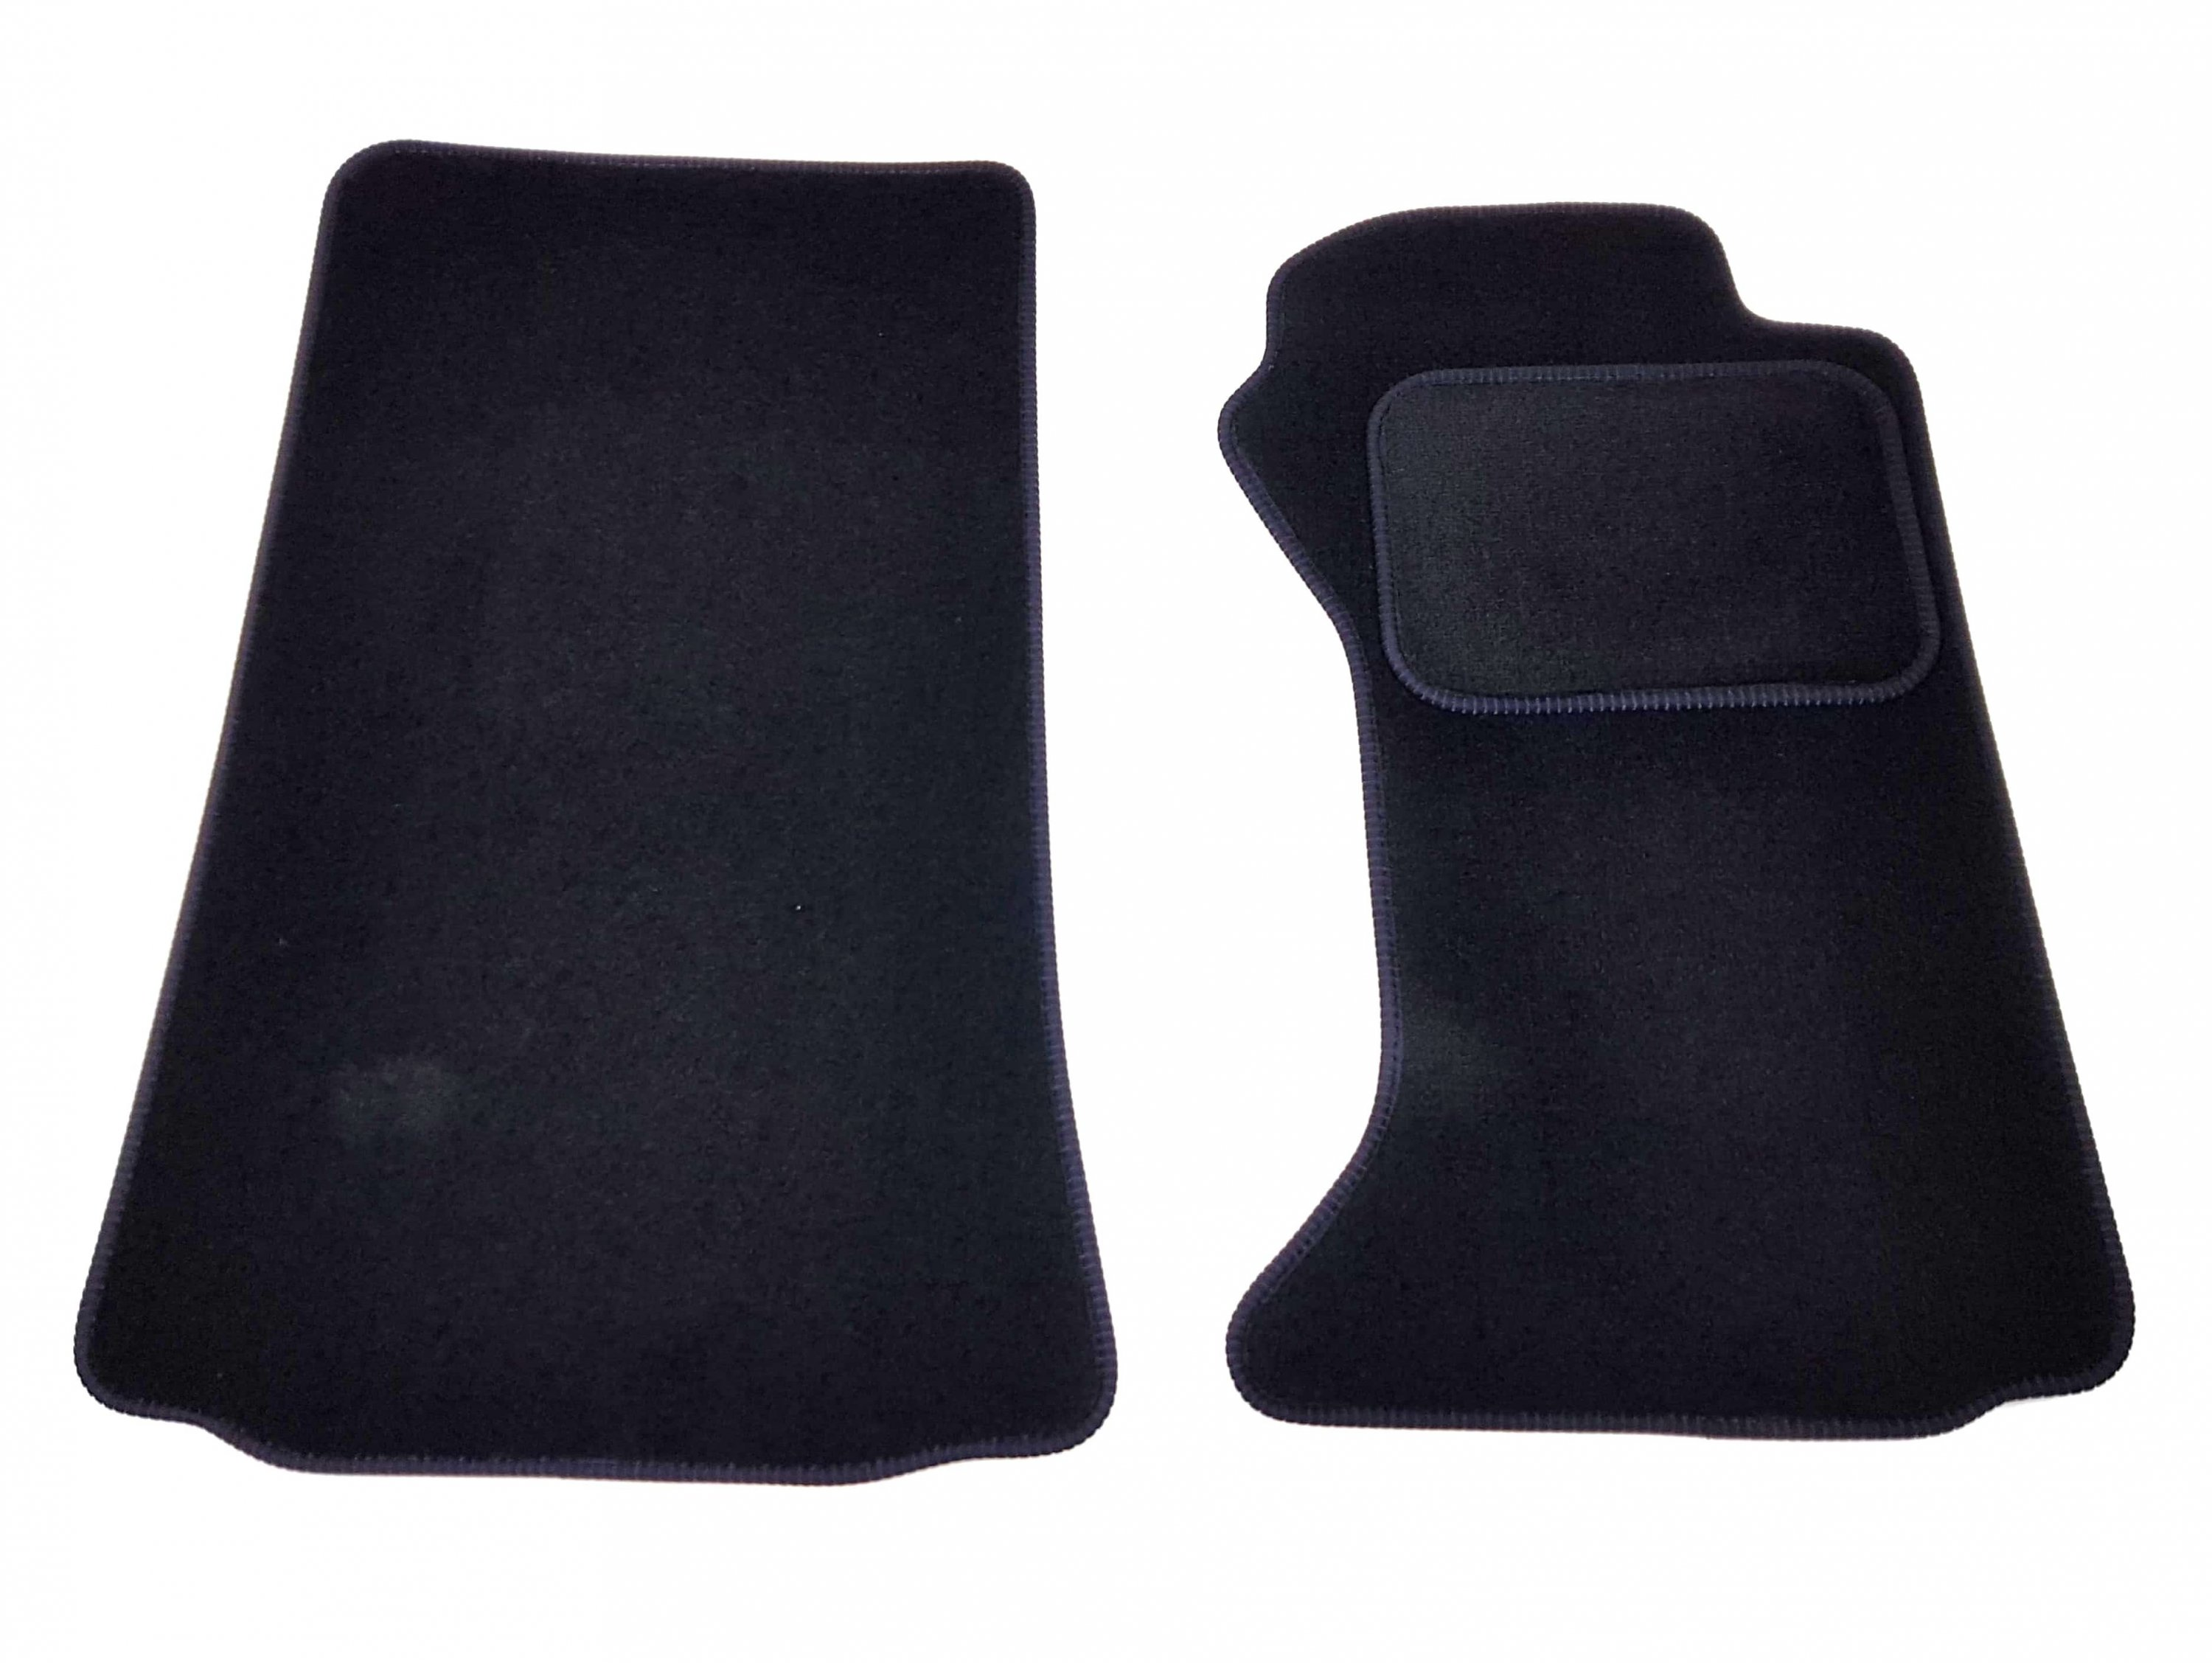 Mazda MX5 Floor Mat Set Mk3, Mk3.5